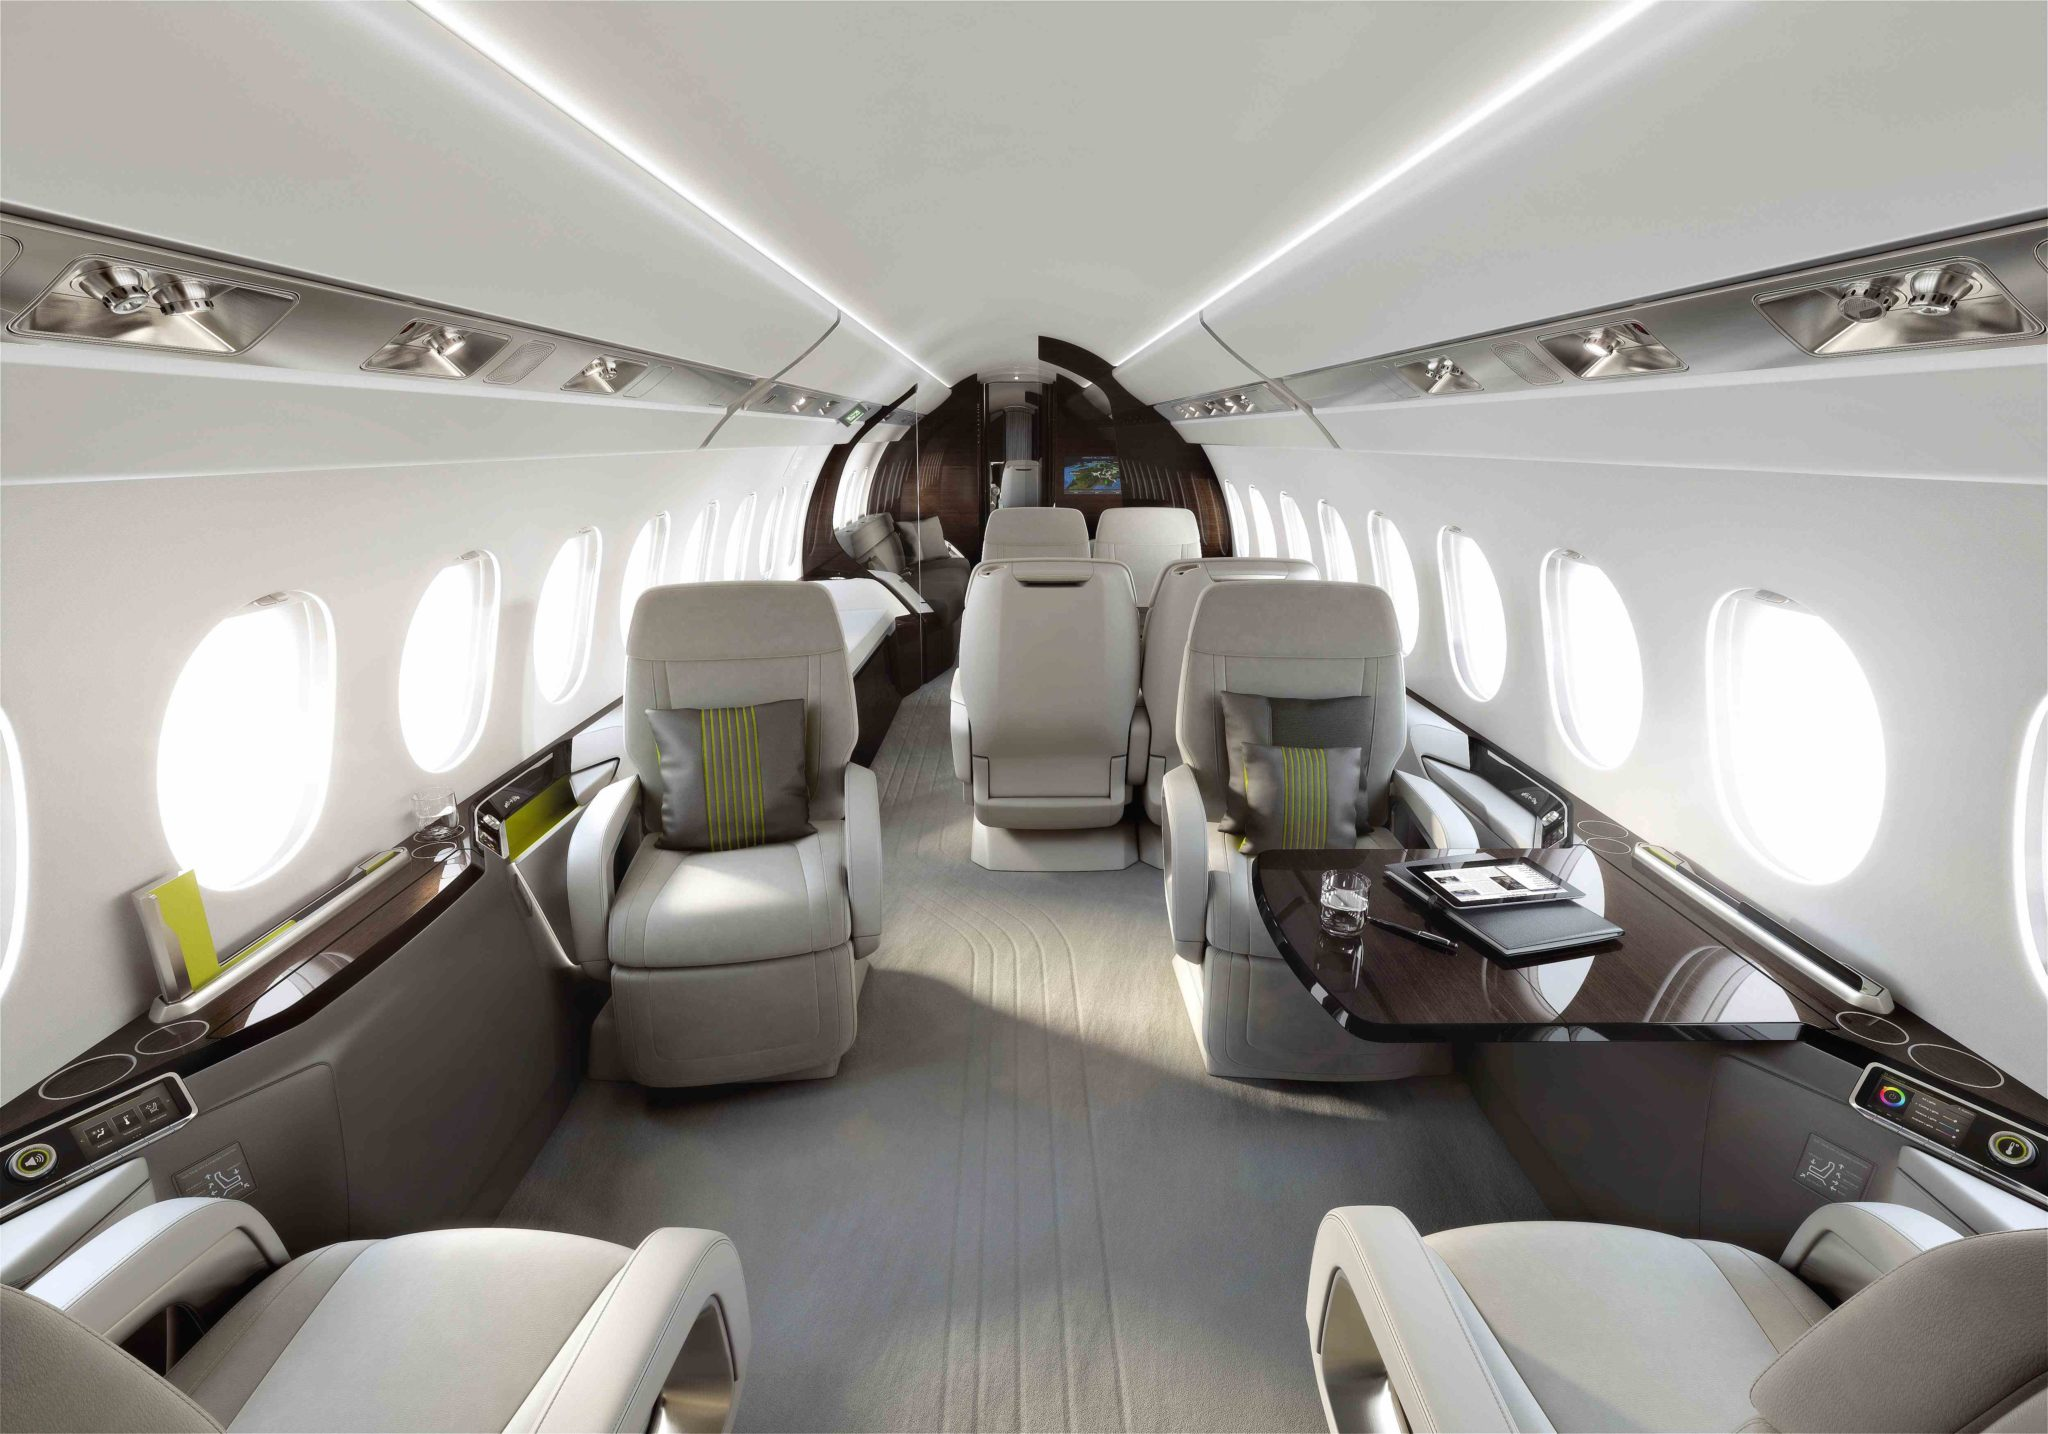 Dassault Falcon 5x Coming Together Quickly Jetoptions: together interiors